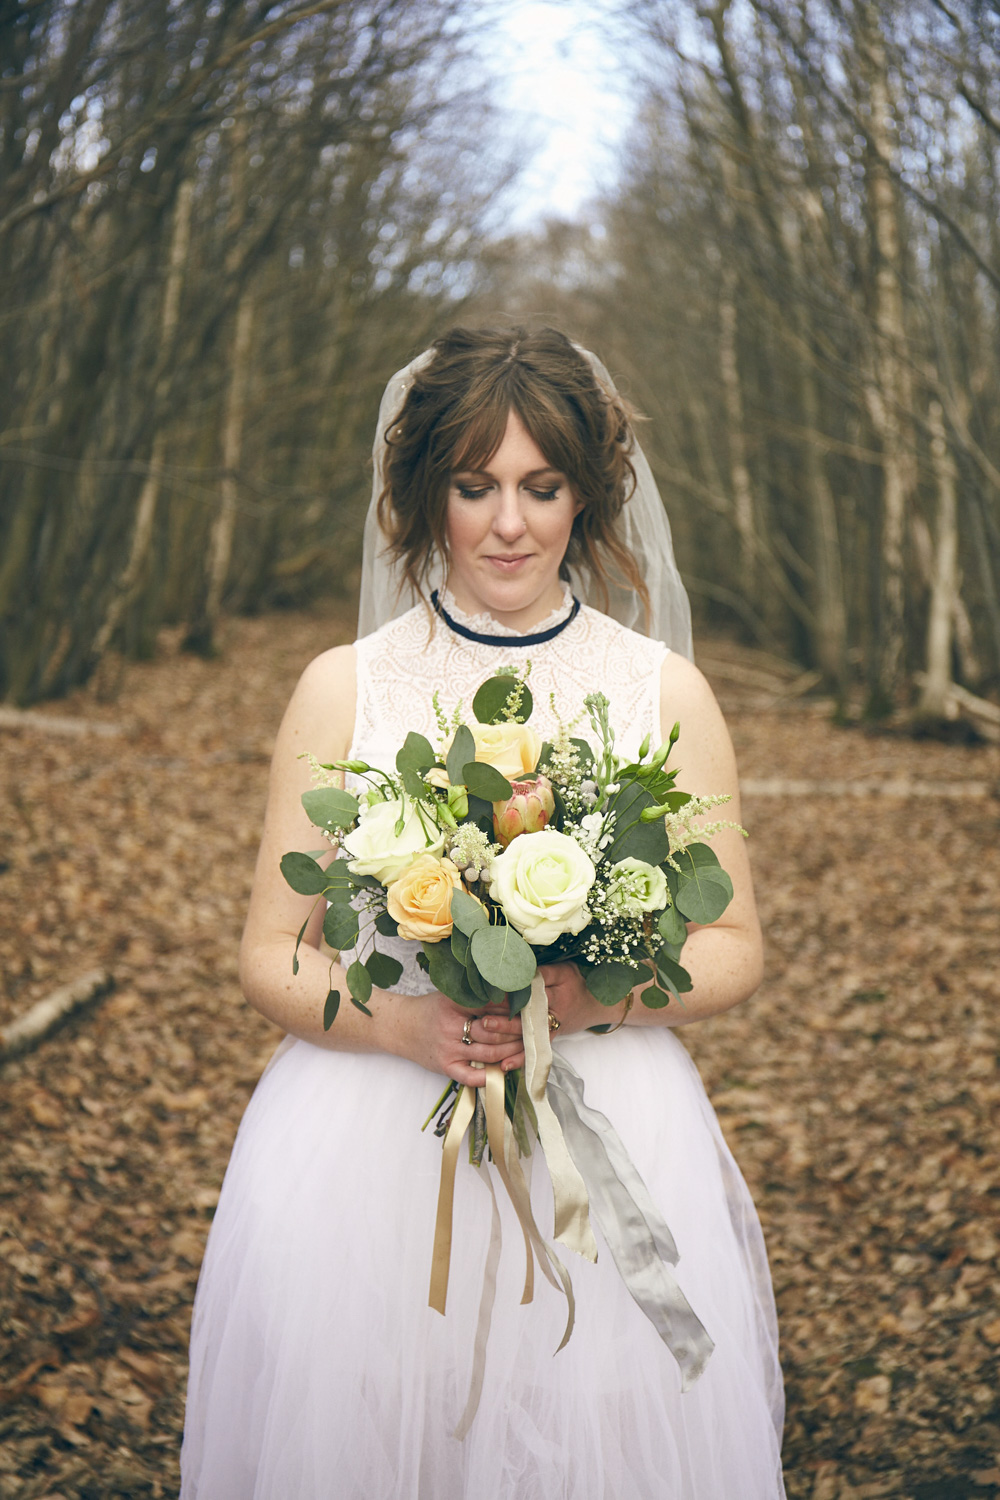 Natasha Spencer weddings and events, wedding planning in Kent, bespoke wedding planner, woodland wedding Kent